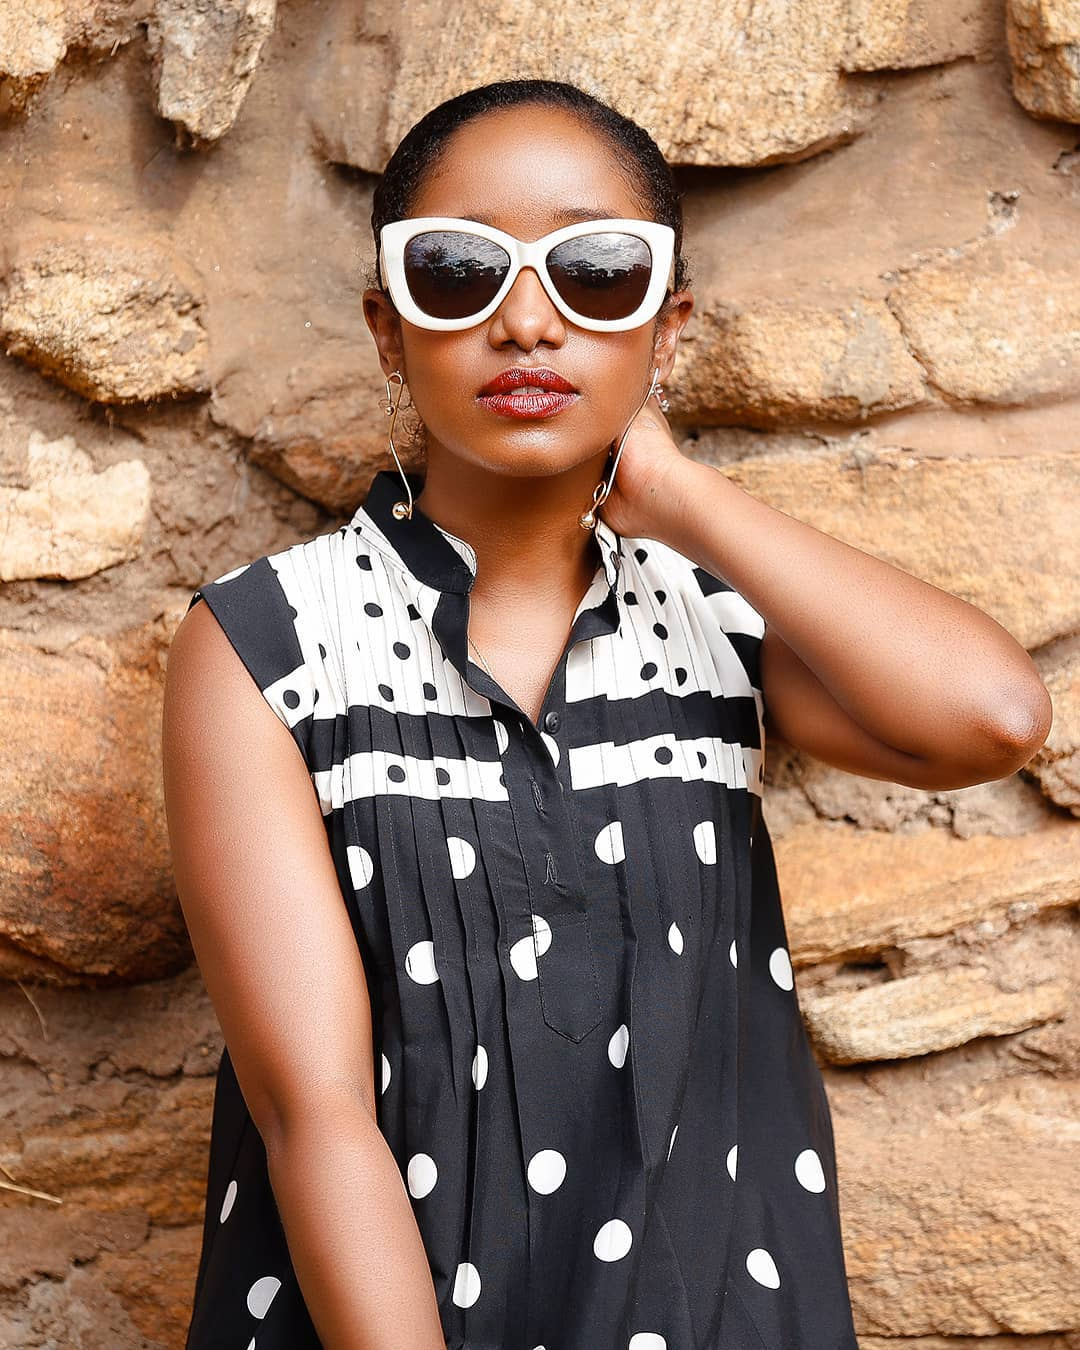 ANITA NDERU2 - Anita Nderu talks about plans to open bakery